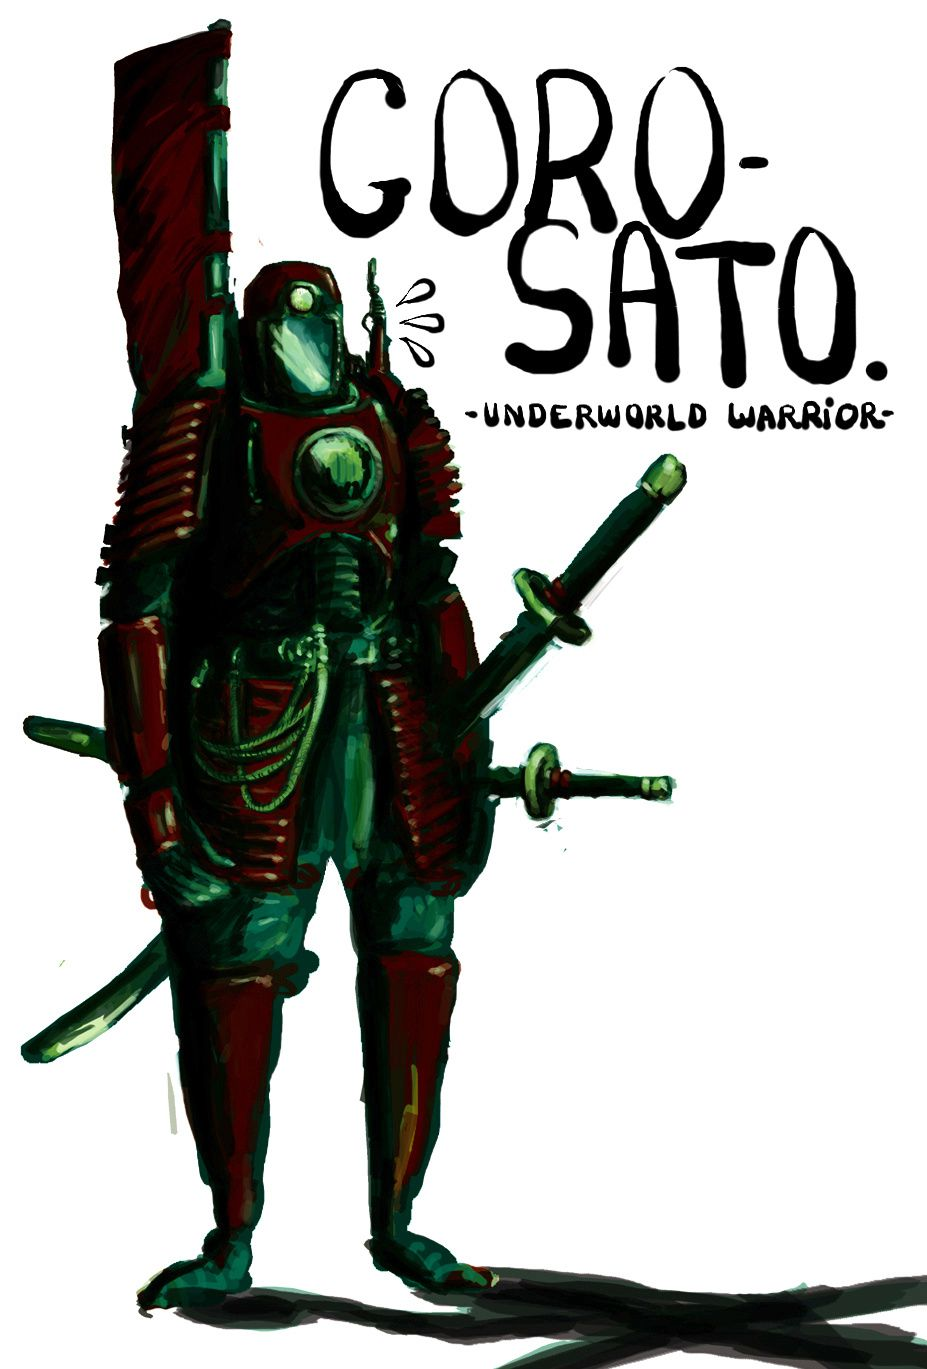 Goro-Sato-the-UnderworldWarrior.jpg